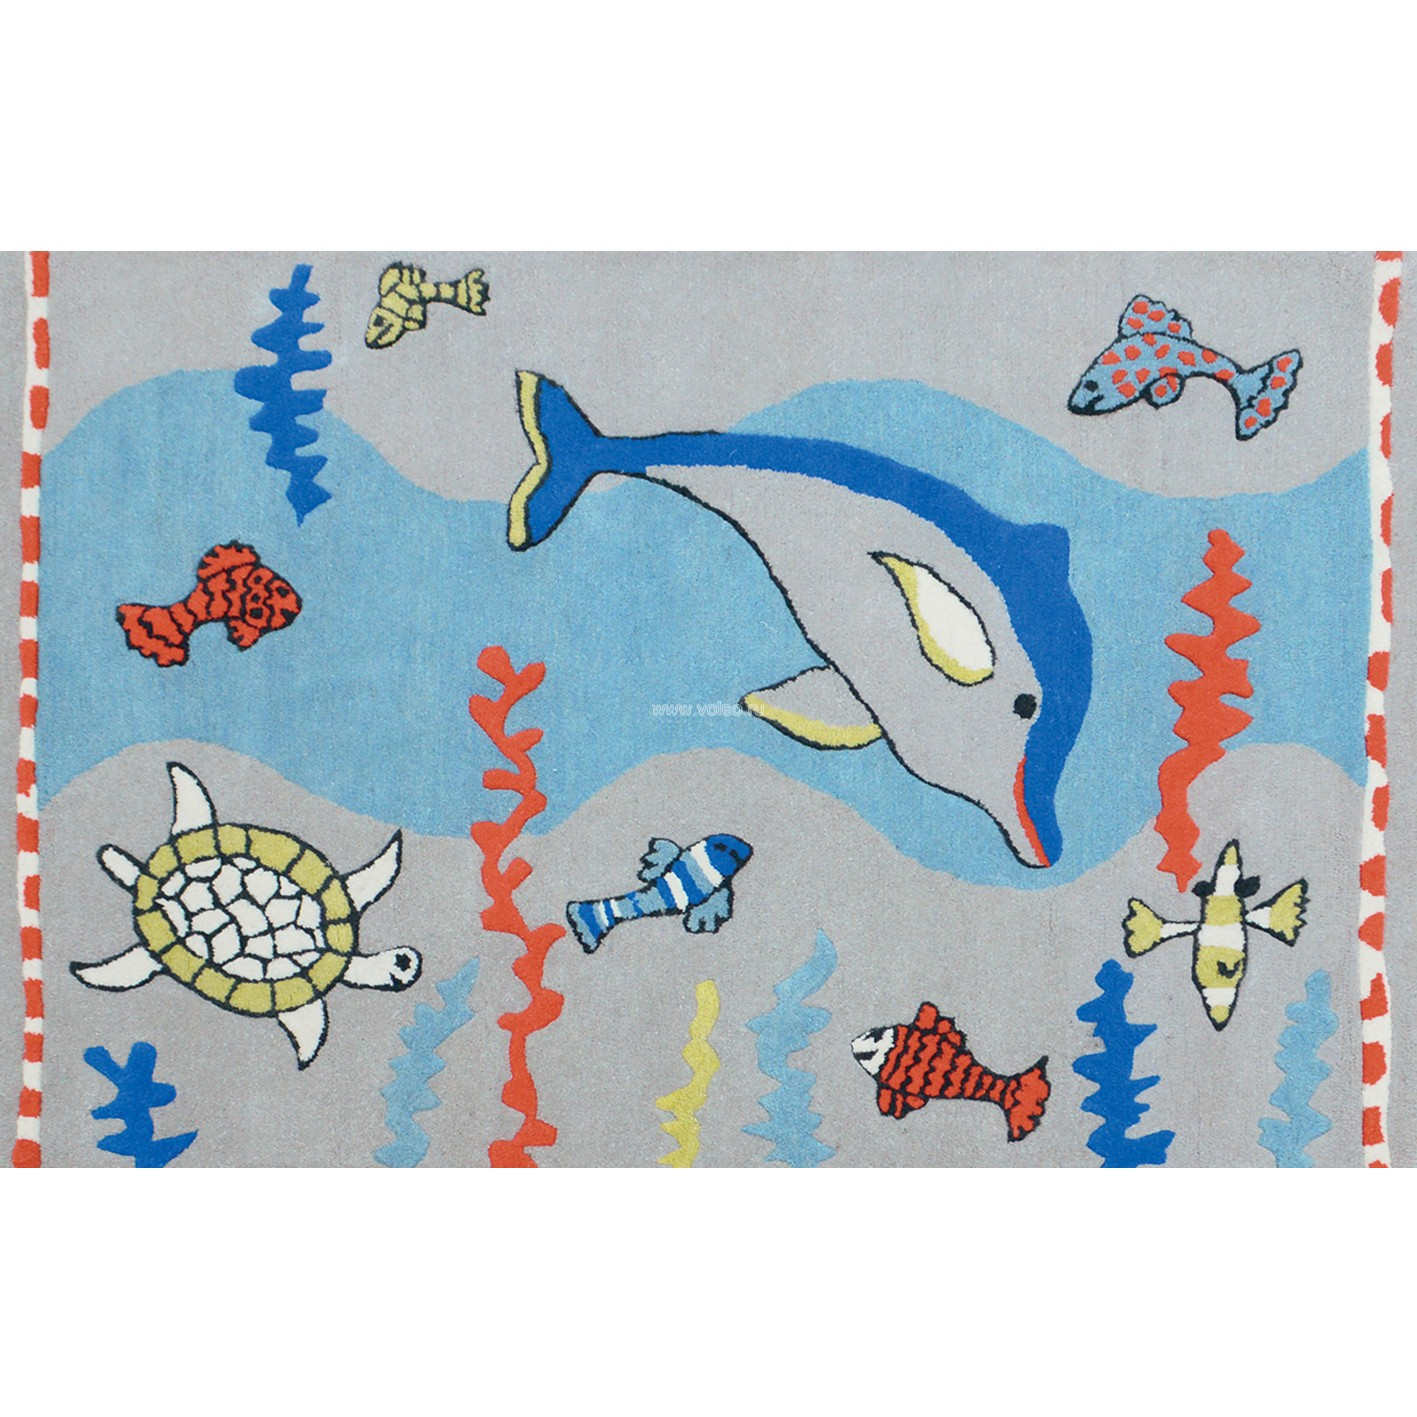 Ковер Designers Guild Kids Rugs Whale Of A Time Cobalt RUGDGK0001, интернет магазин Волео